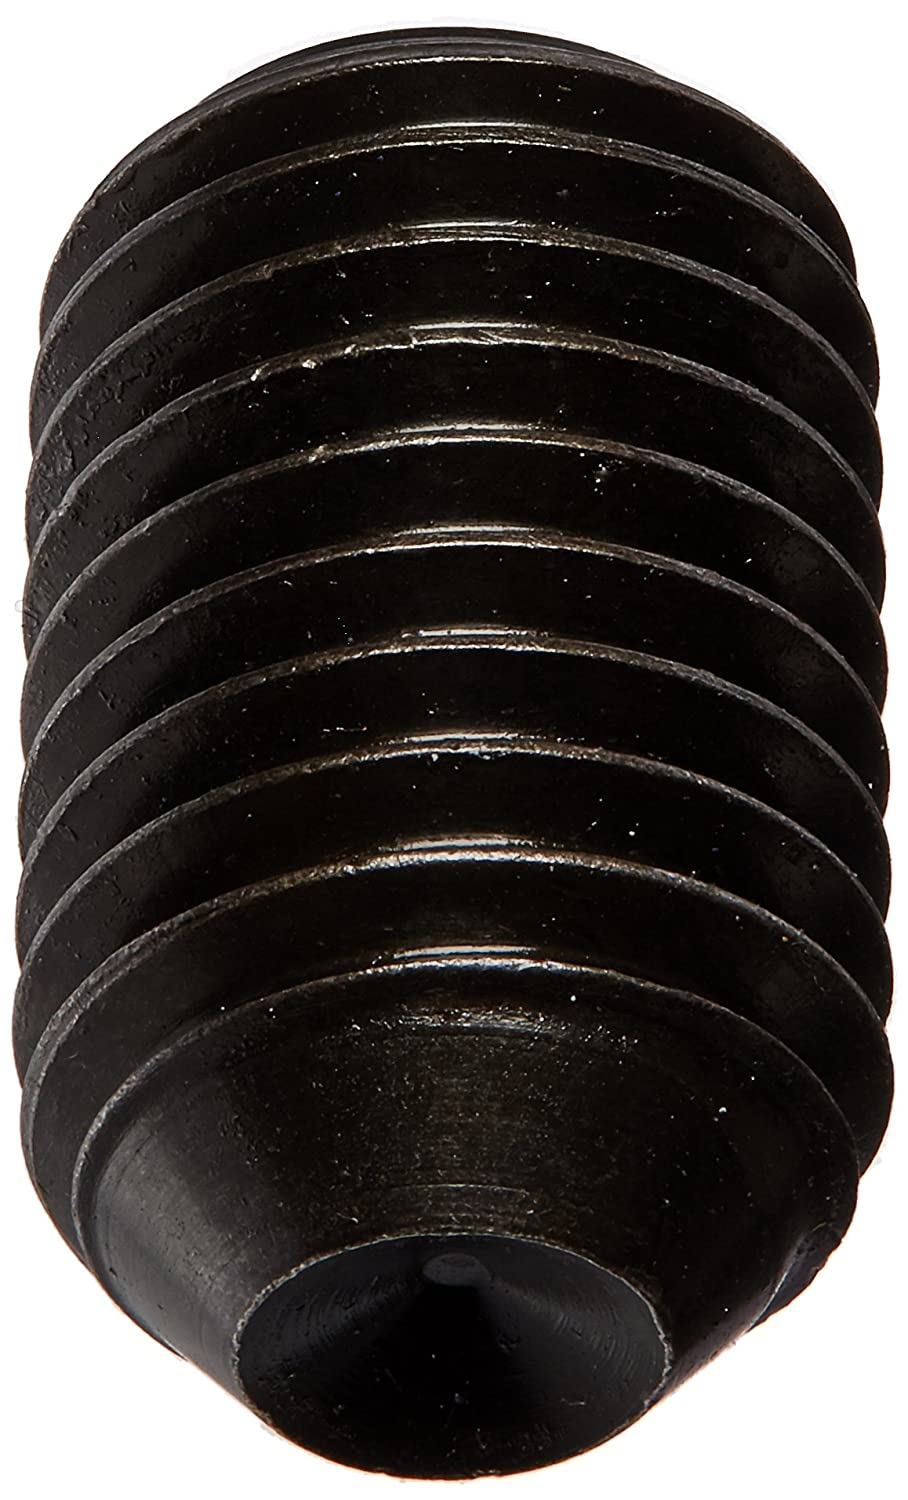 Black Oxide Finish US Made 5//8-11 Thread Size 1 Length Small Parts 6216SSC Alloy Steel Set Screw Cup Point Meets ASME B18.3 Hex Socket Drive 5//8-11 Thread Size Pack of 50 1 Length